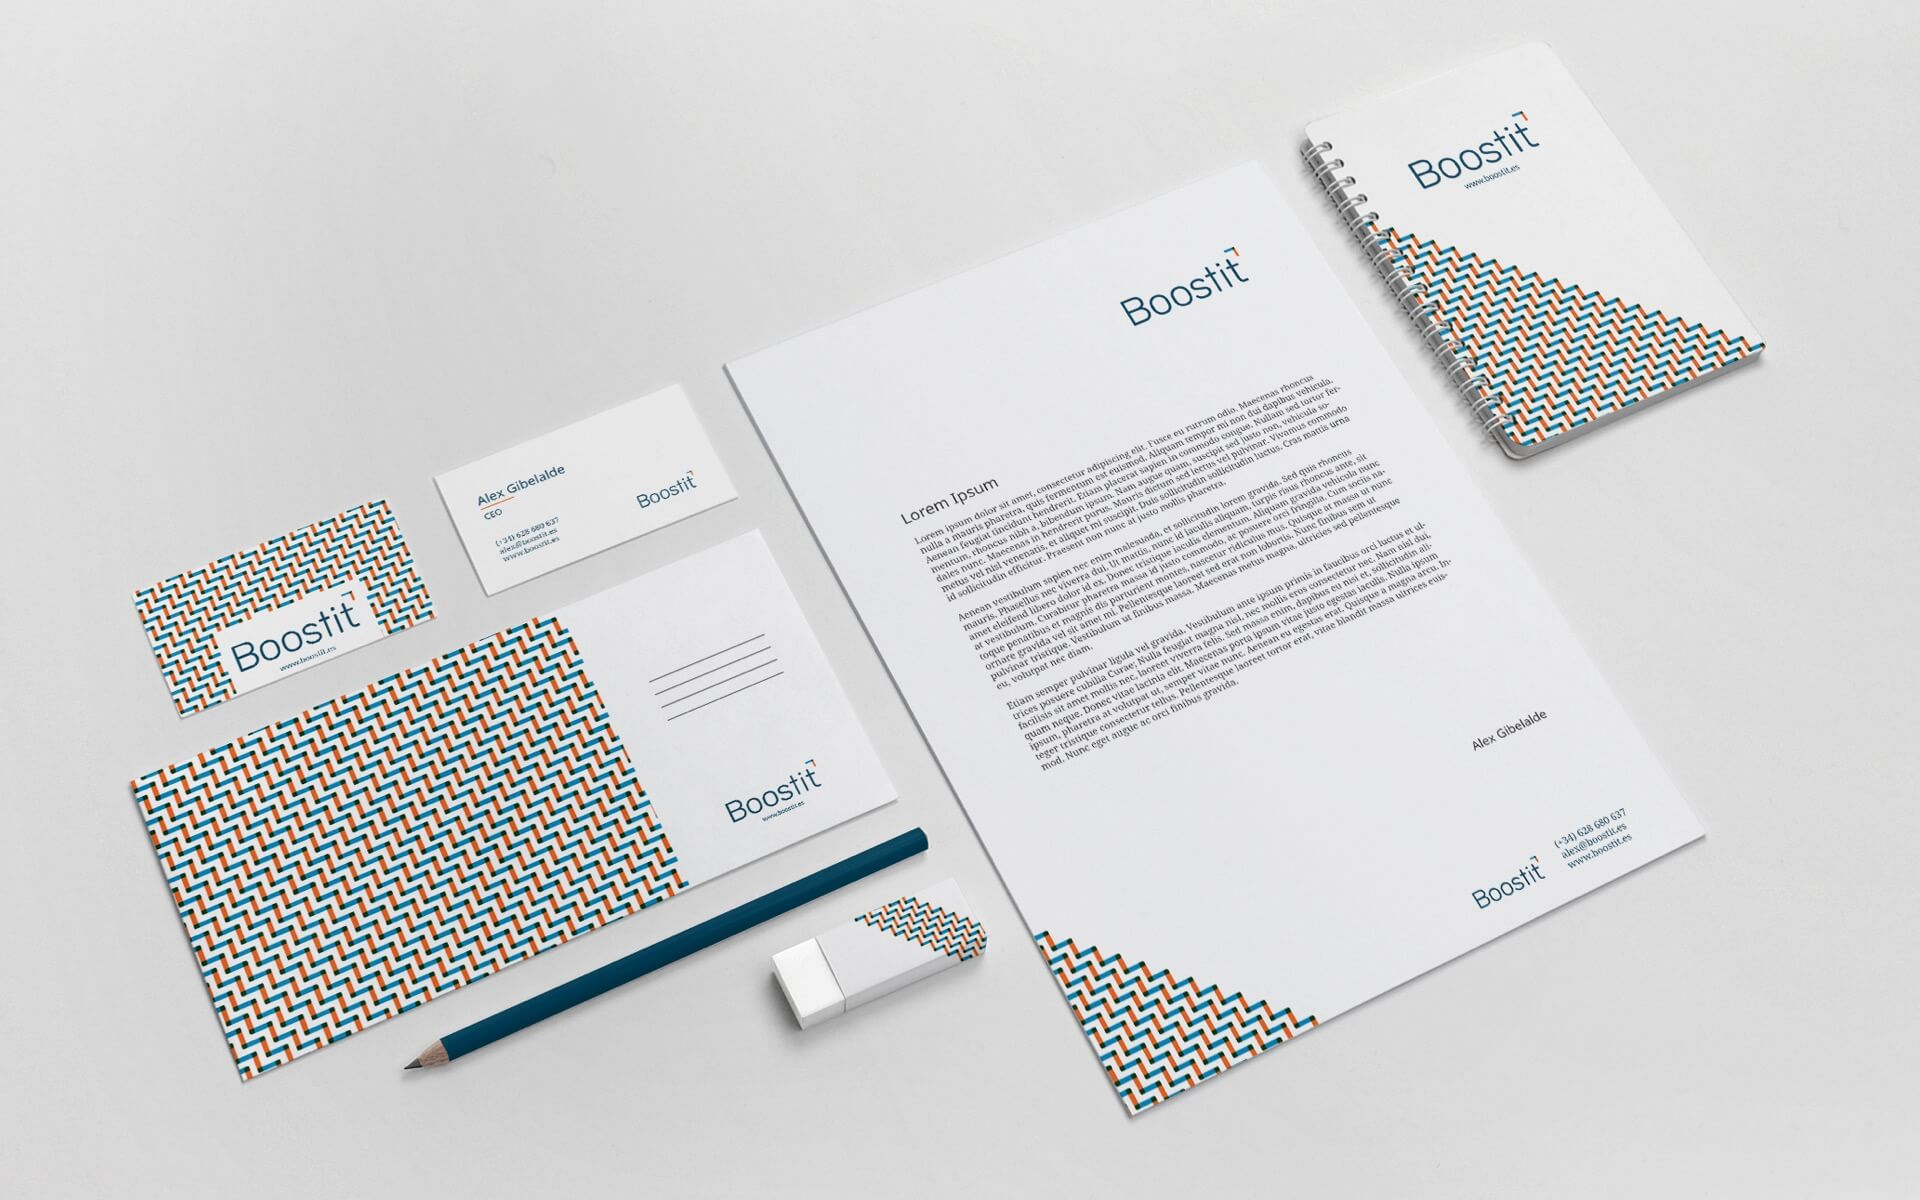 boostit-branding-showcase